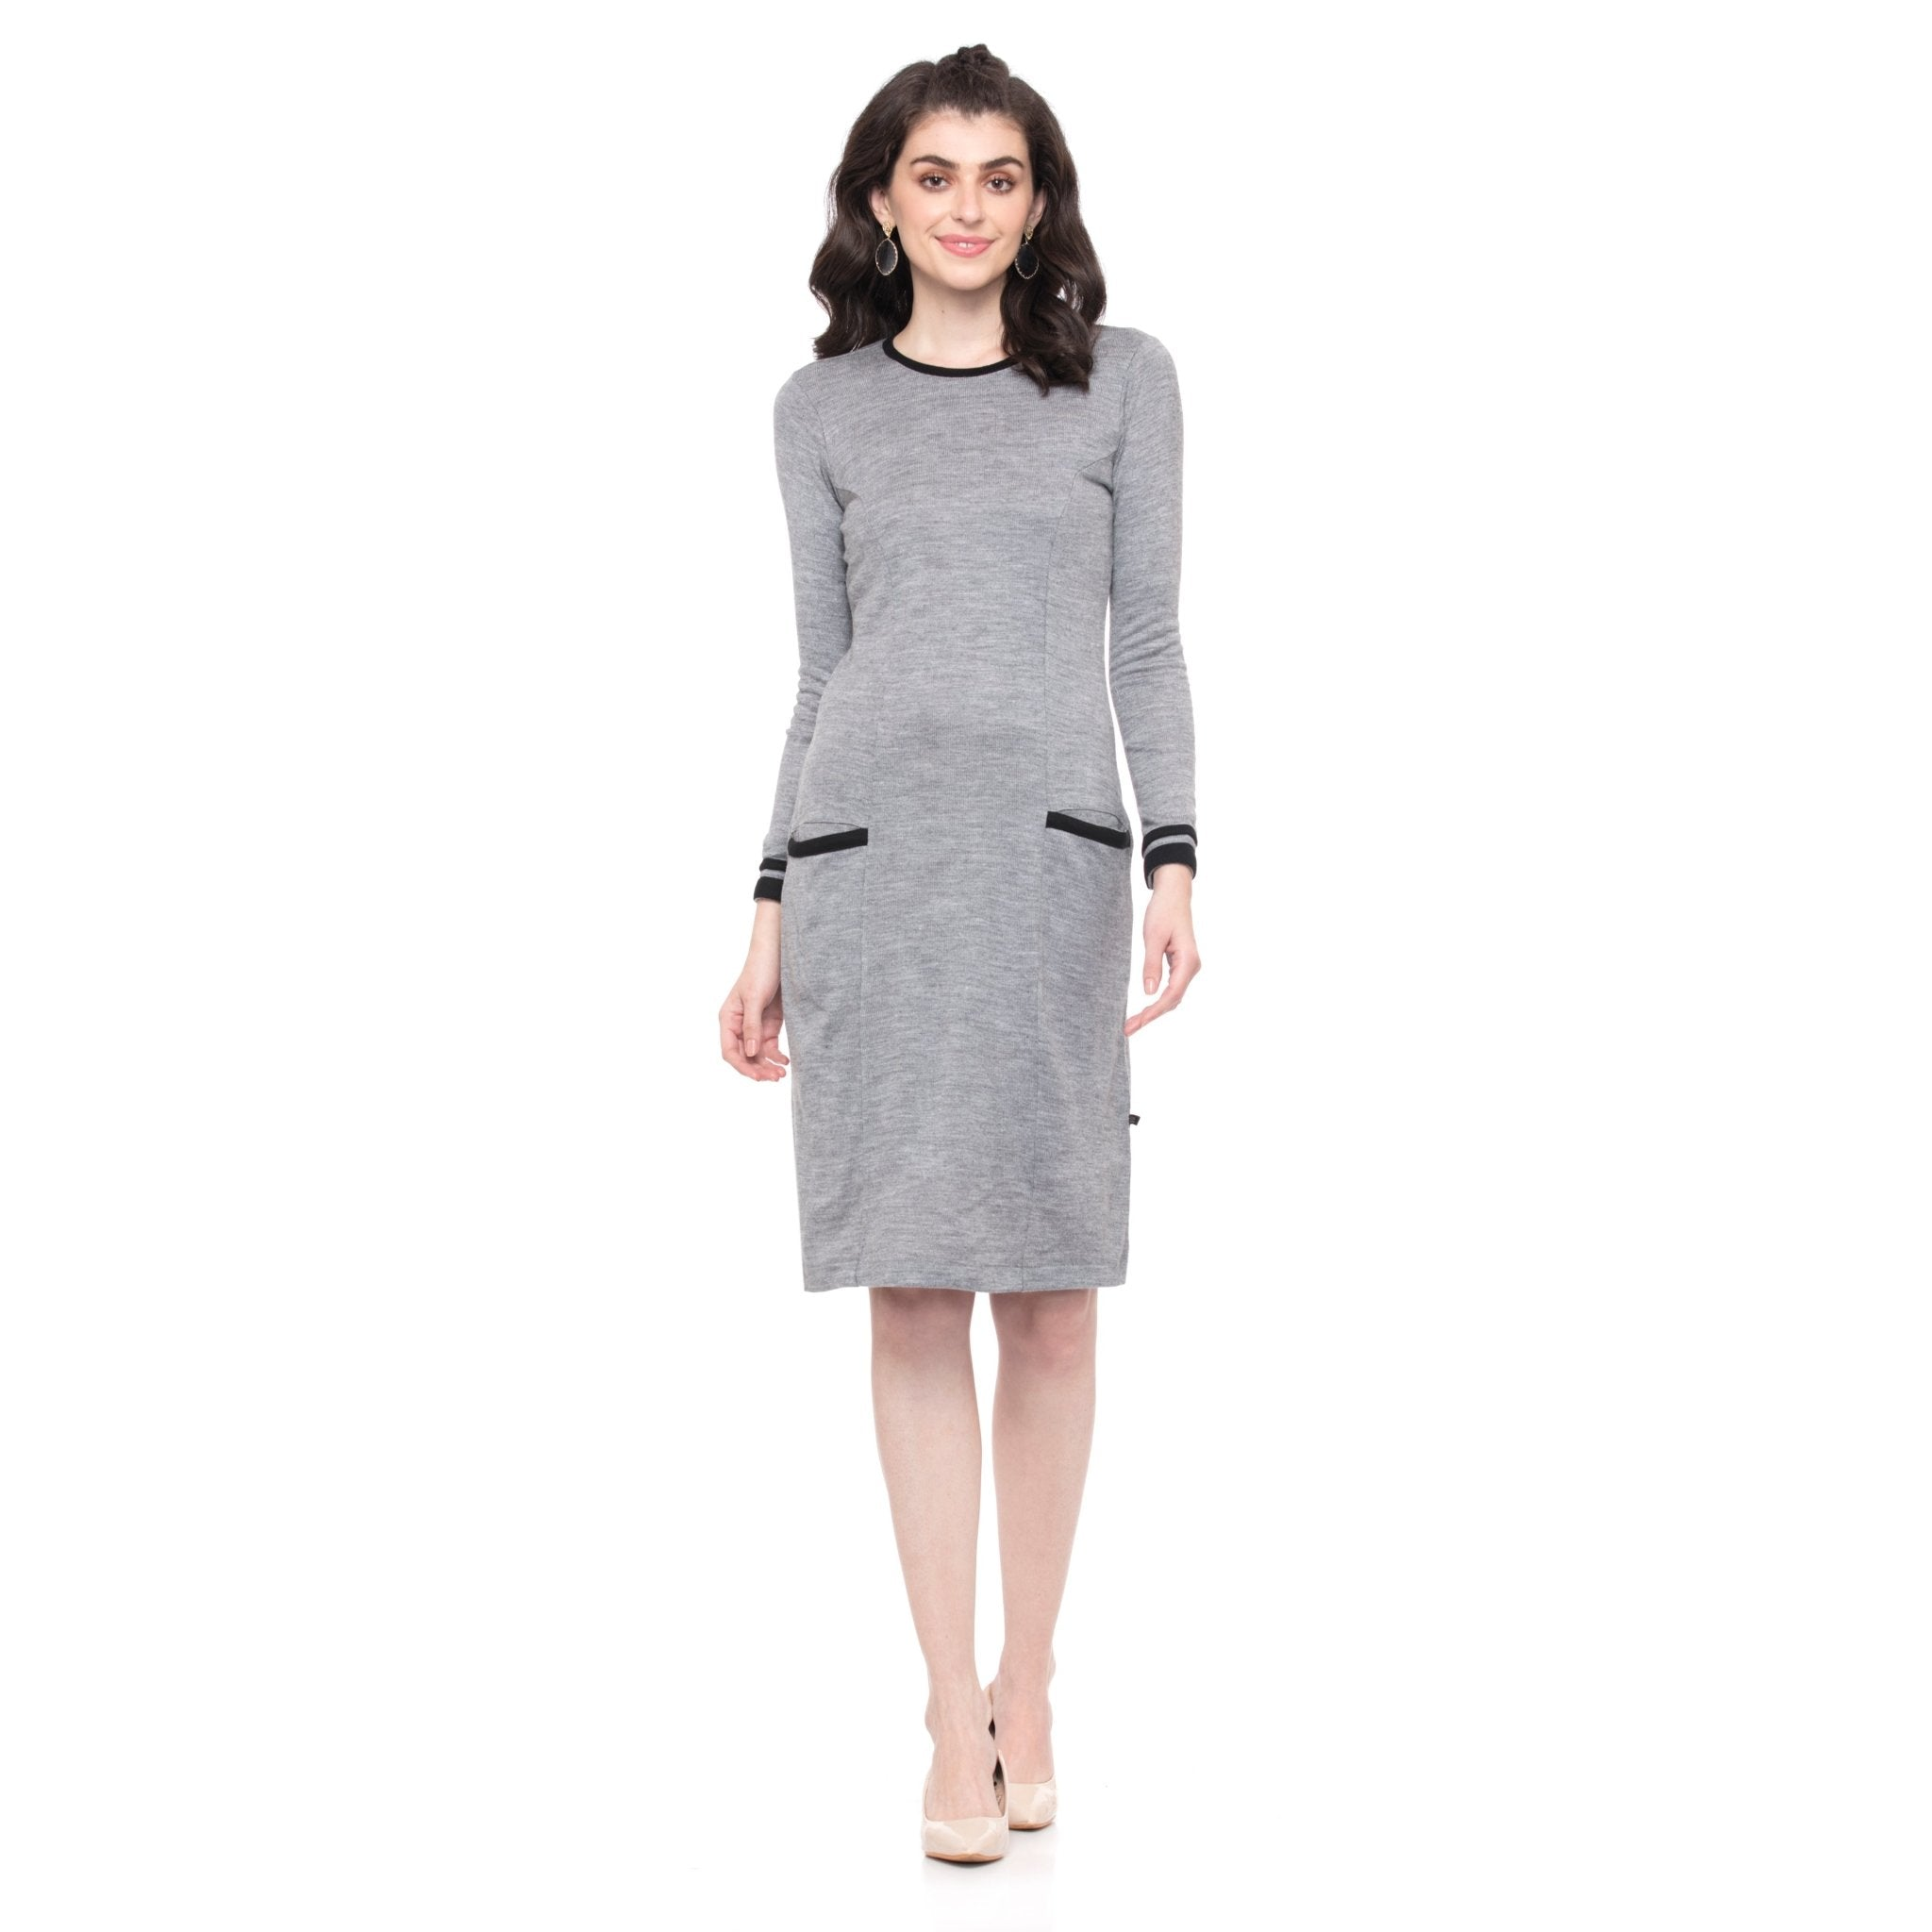 SOLID GRAY WOOLEN DRESS - ZOMO